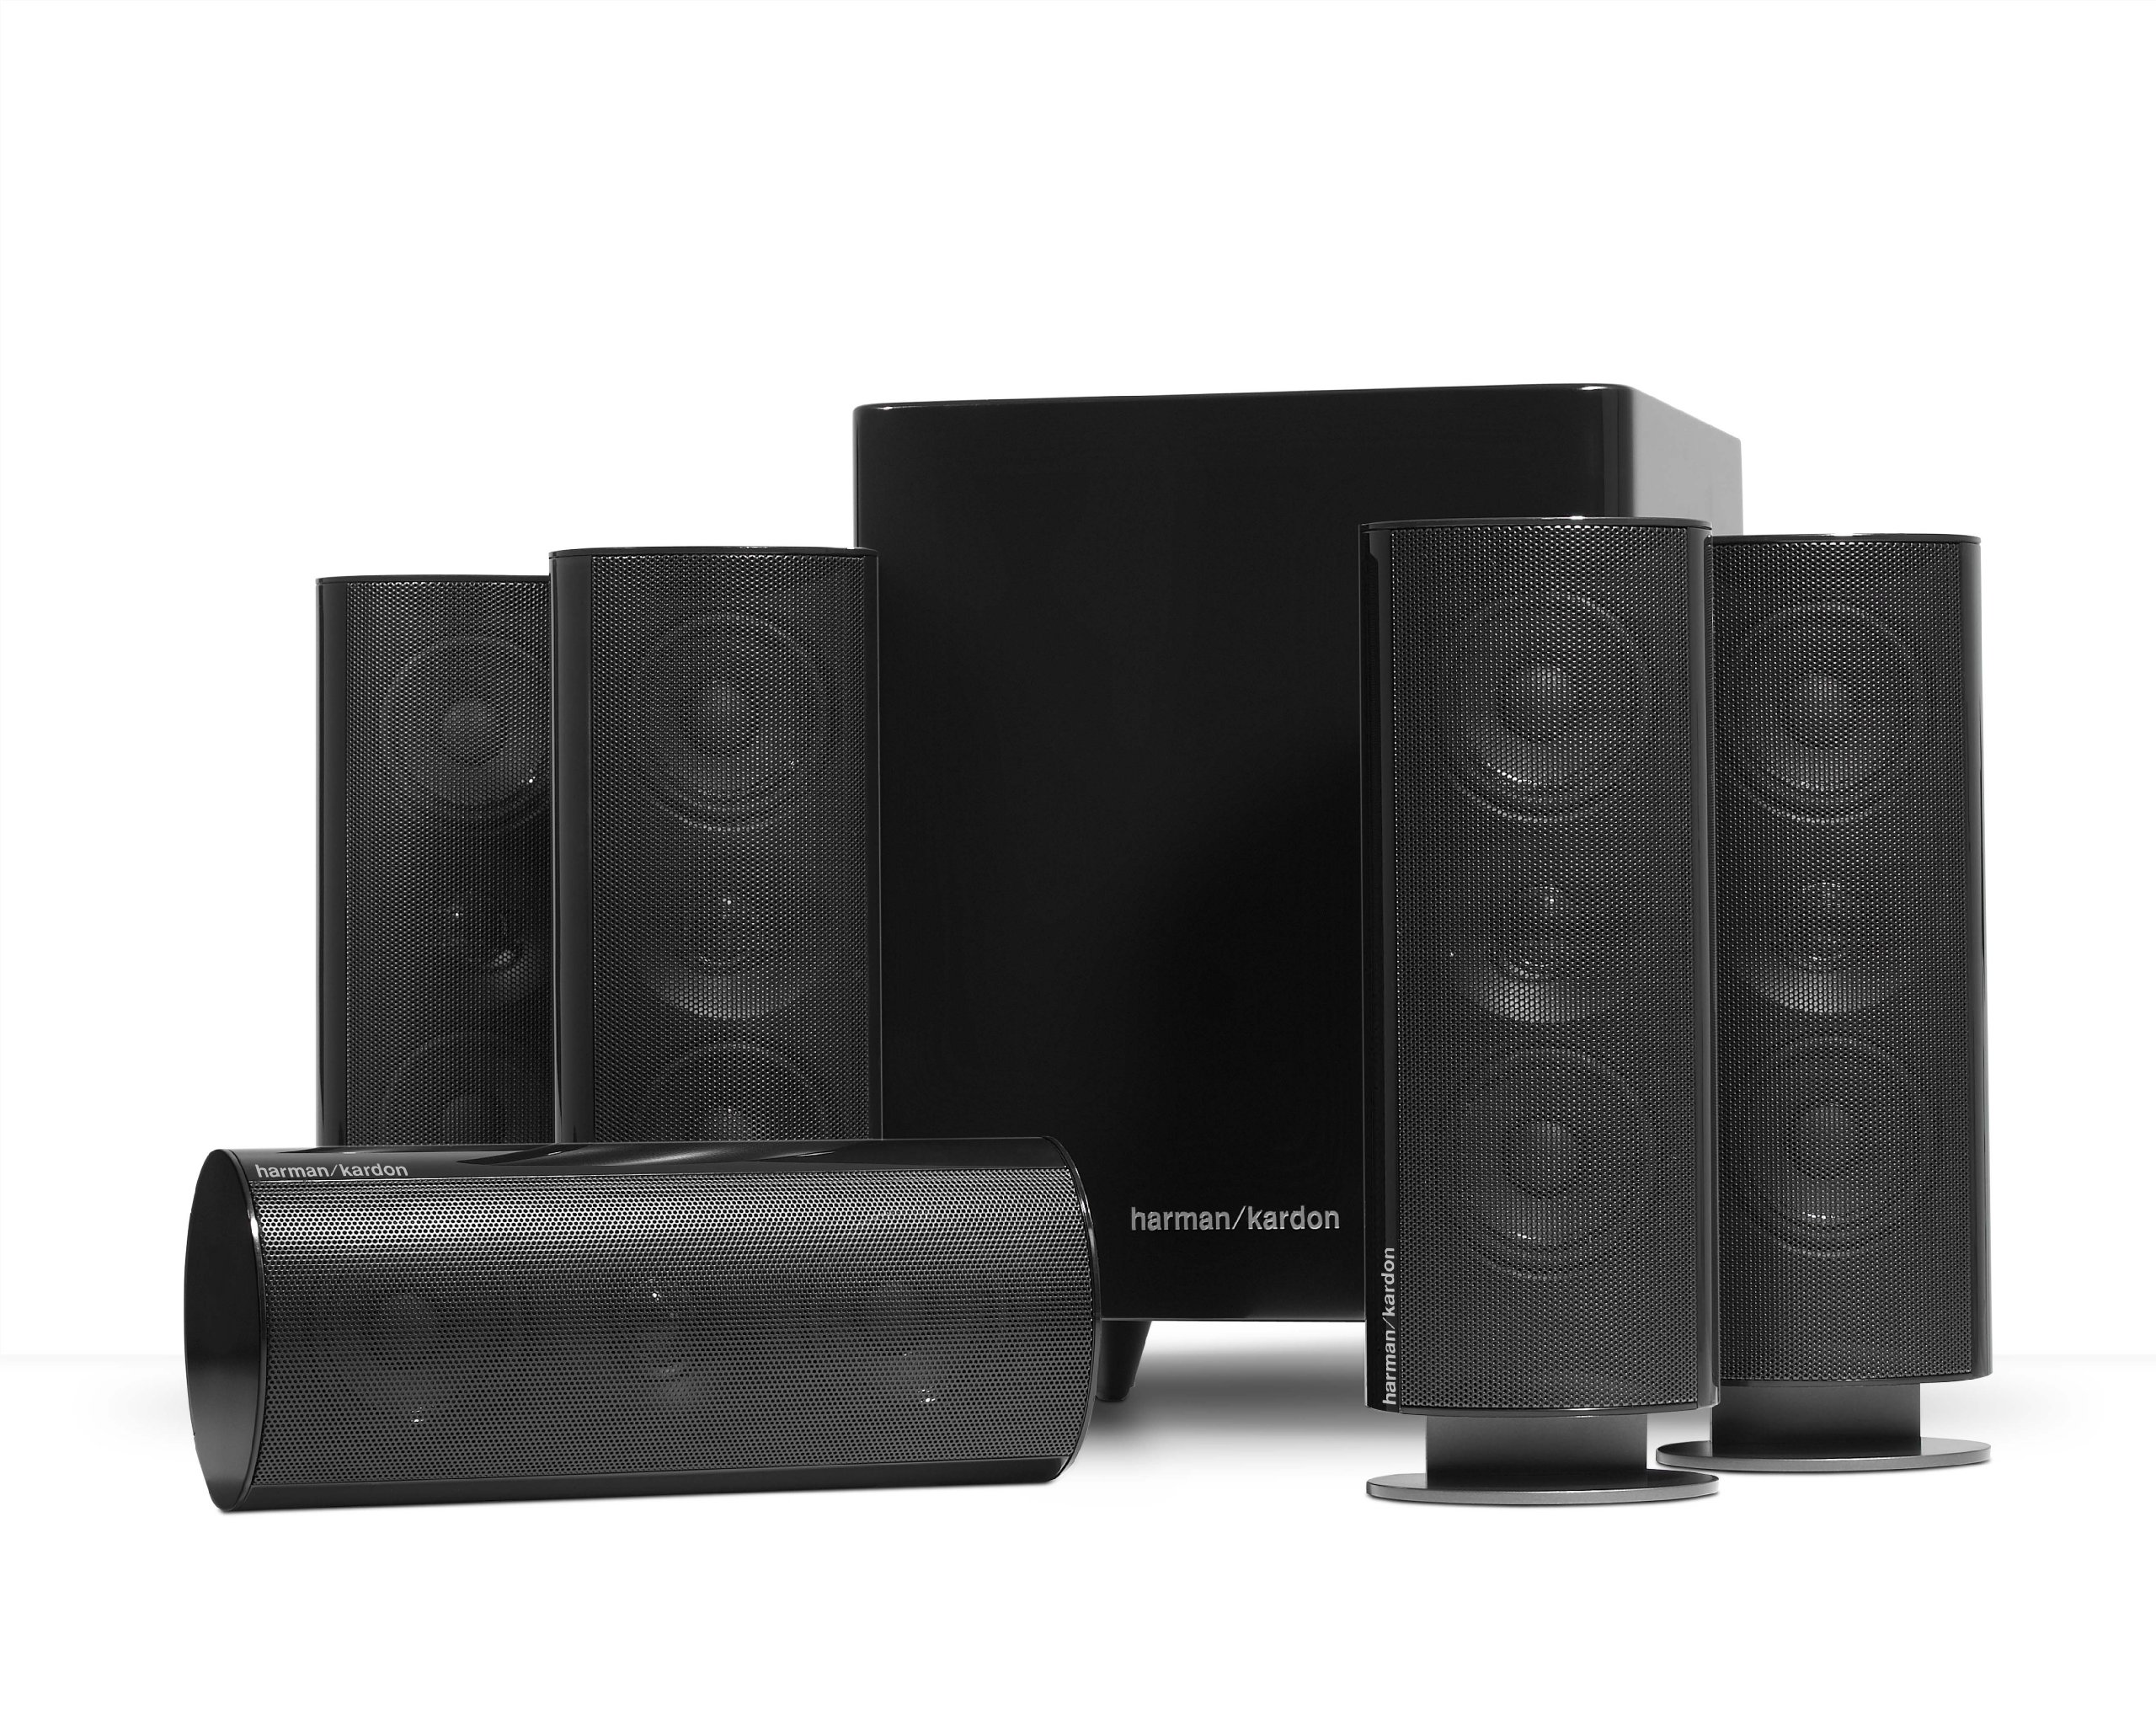 Harman Kardon HKTS 30BQ 5.1 Home Theater Speaker System (Black) by Harman Kardon